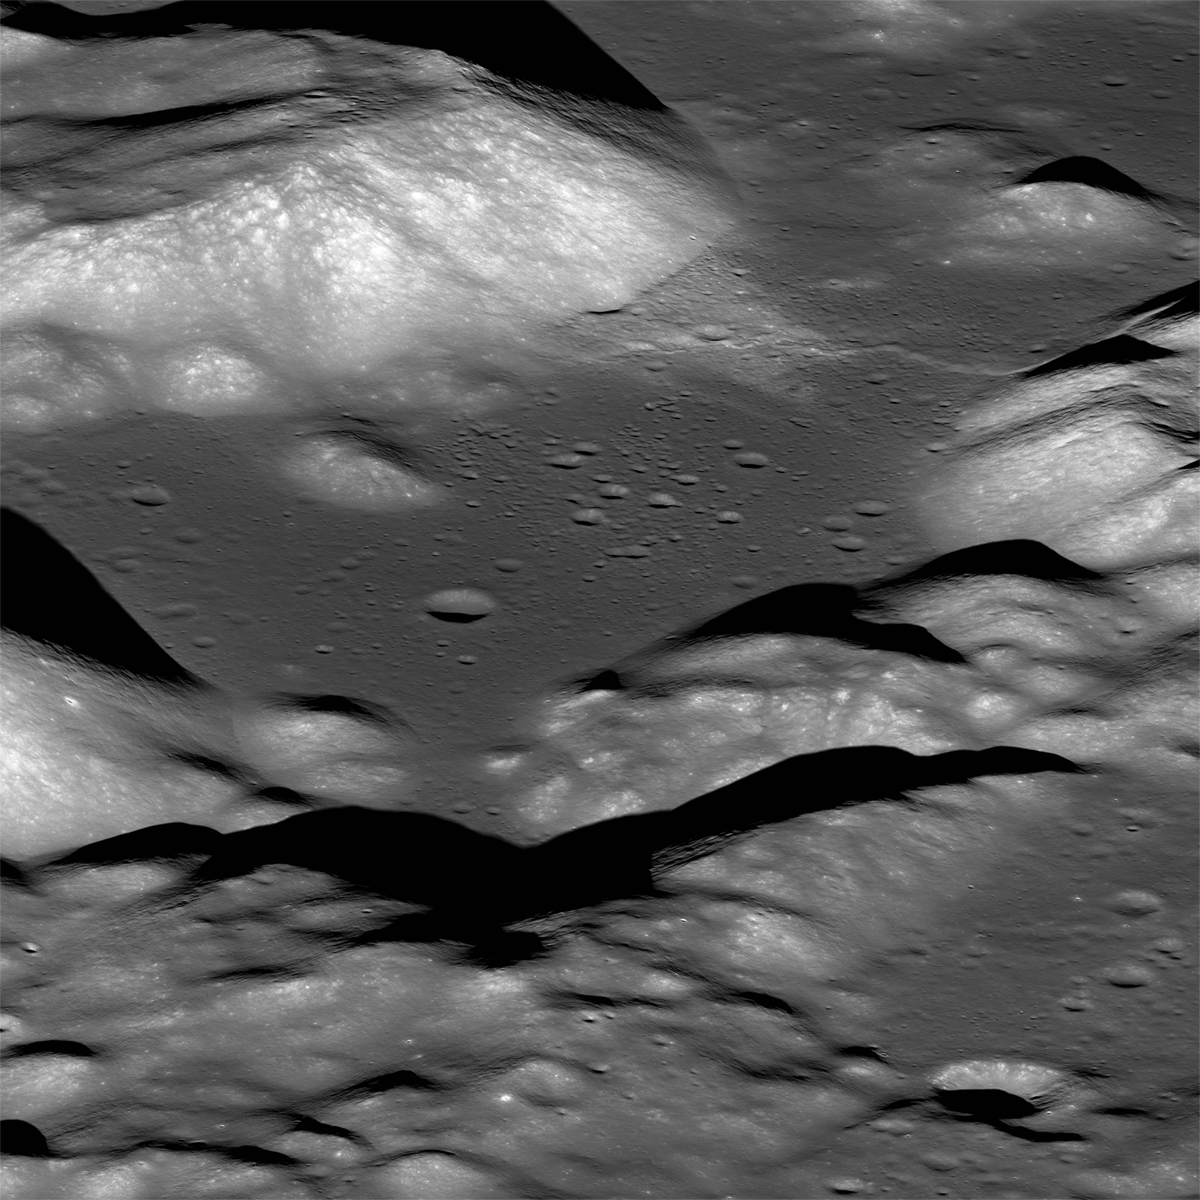 Taurus Littrow Valley from the east